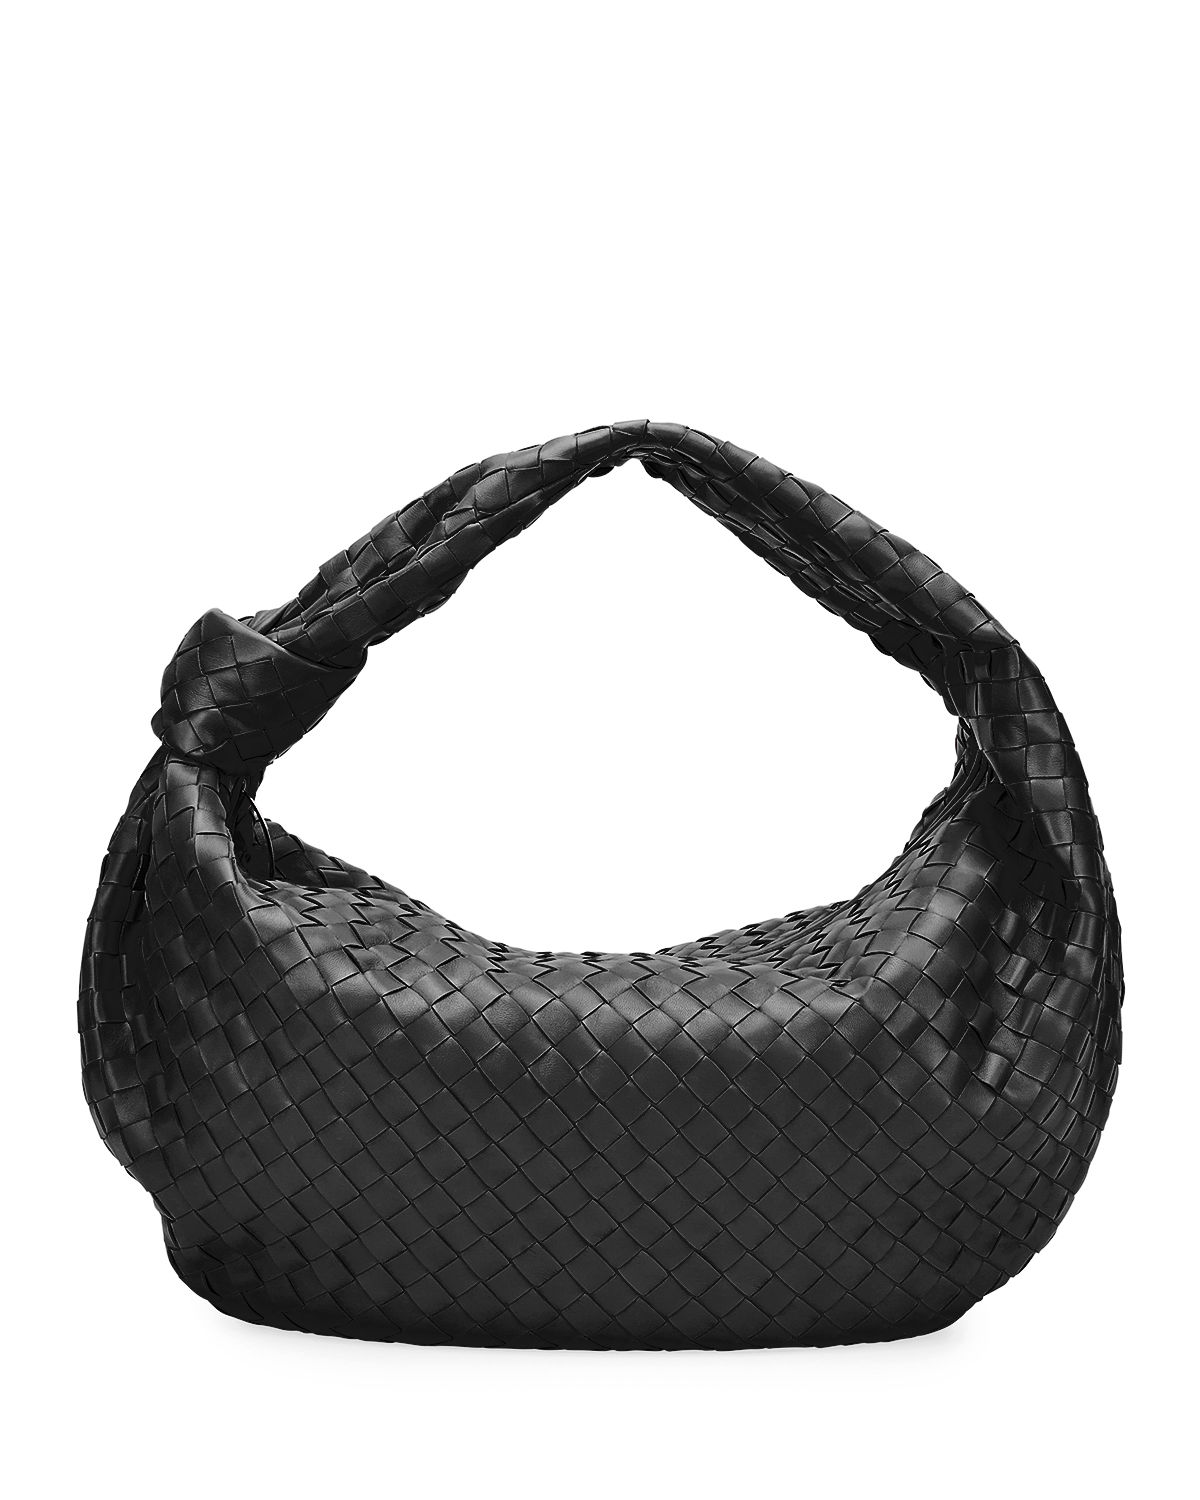 The Jodie Large Intrecciato Woven Leather Hobo Bag